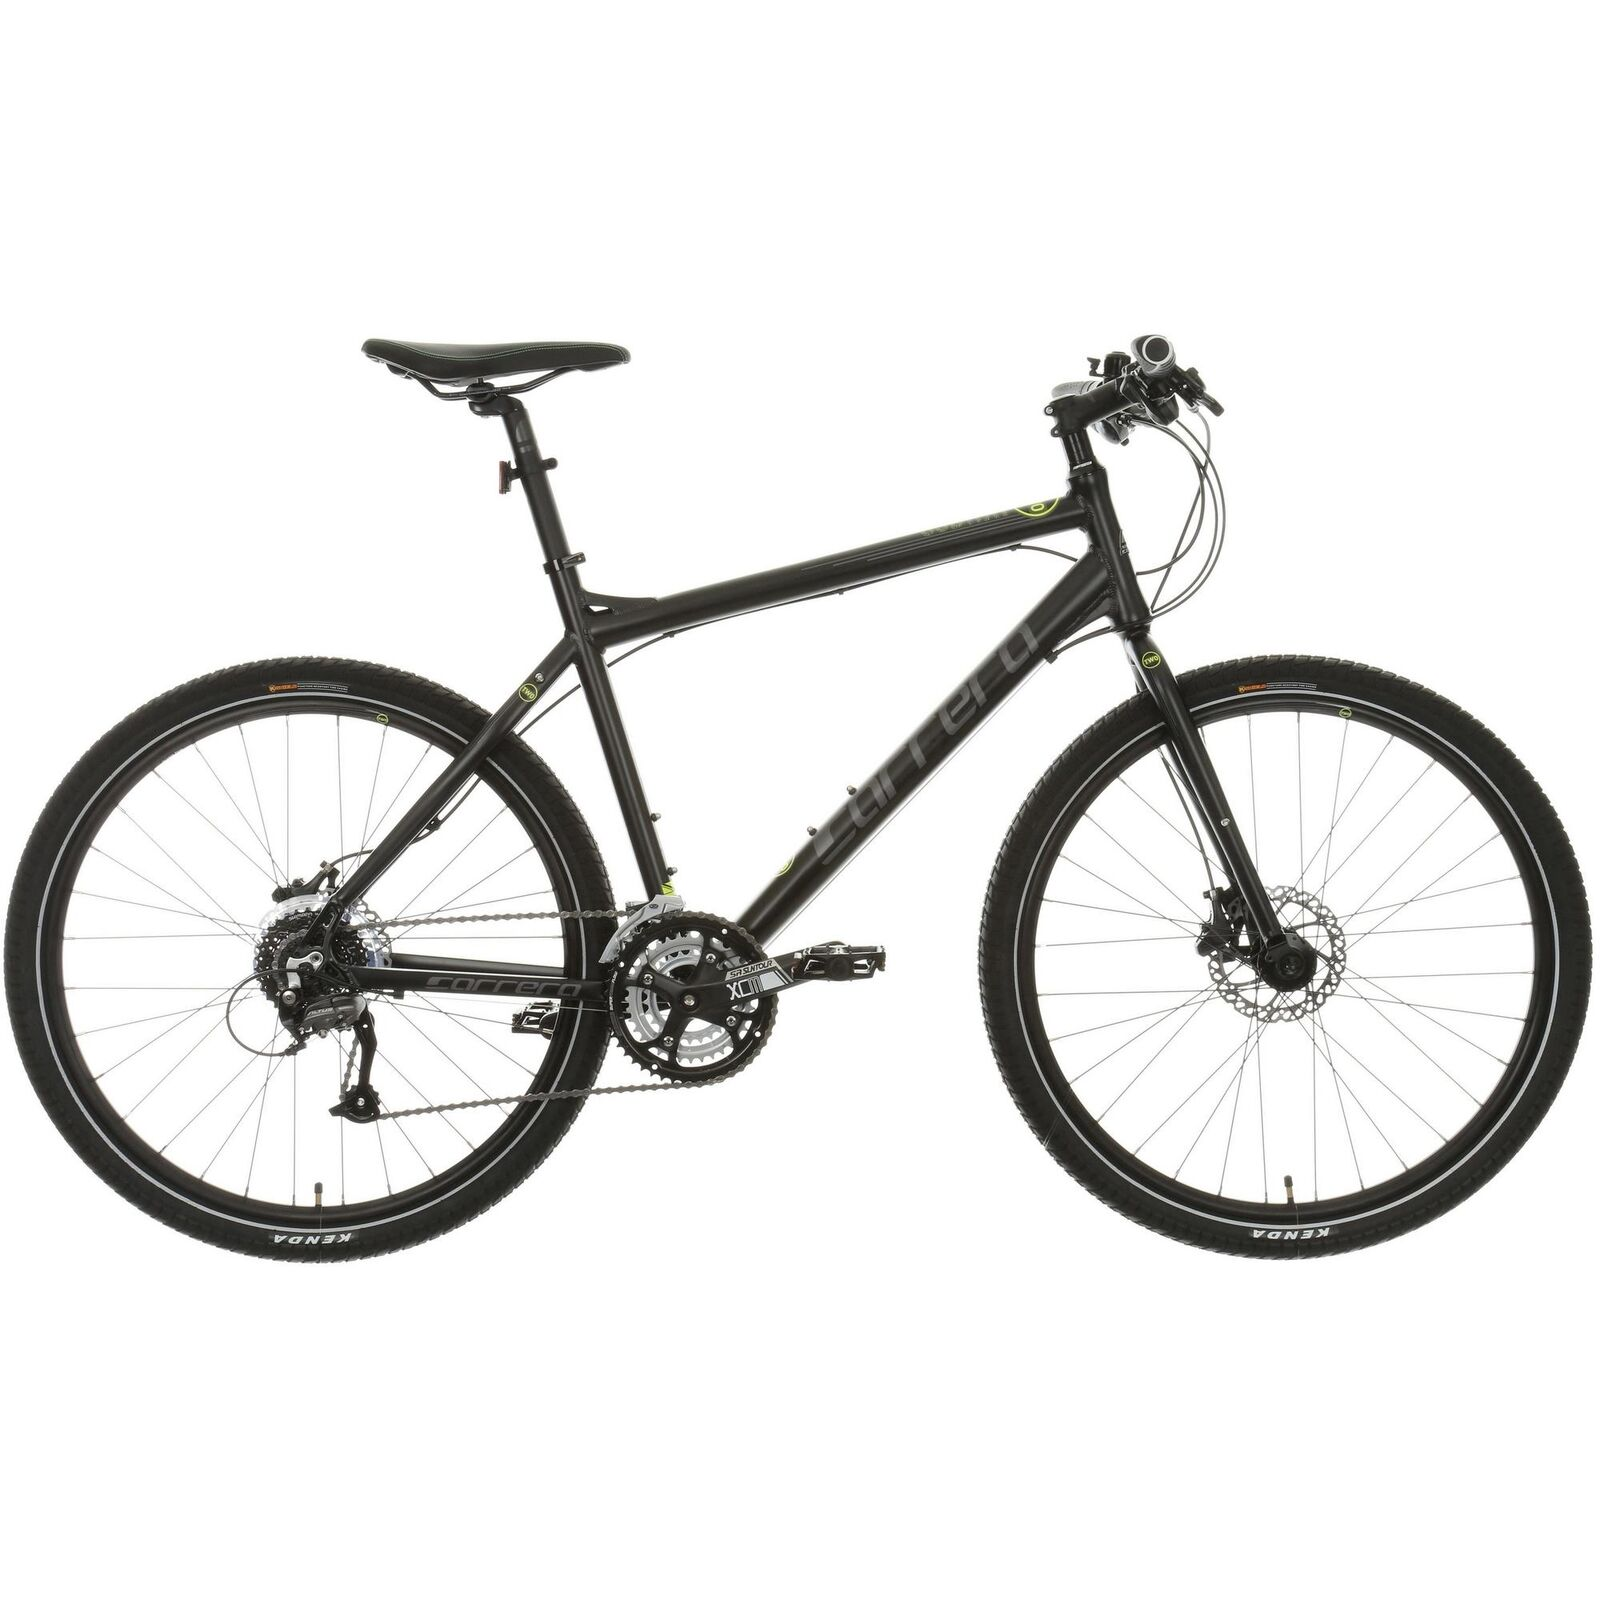 Carrera Subway 2 Hybrid Bike 27 Gears Lightweight Bicycle Disc Brake 27.5  Wheel